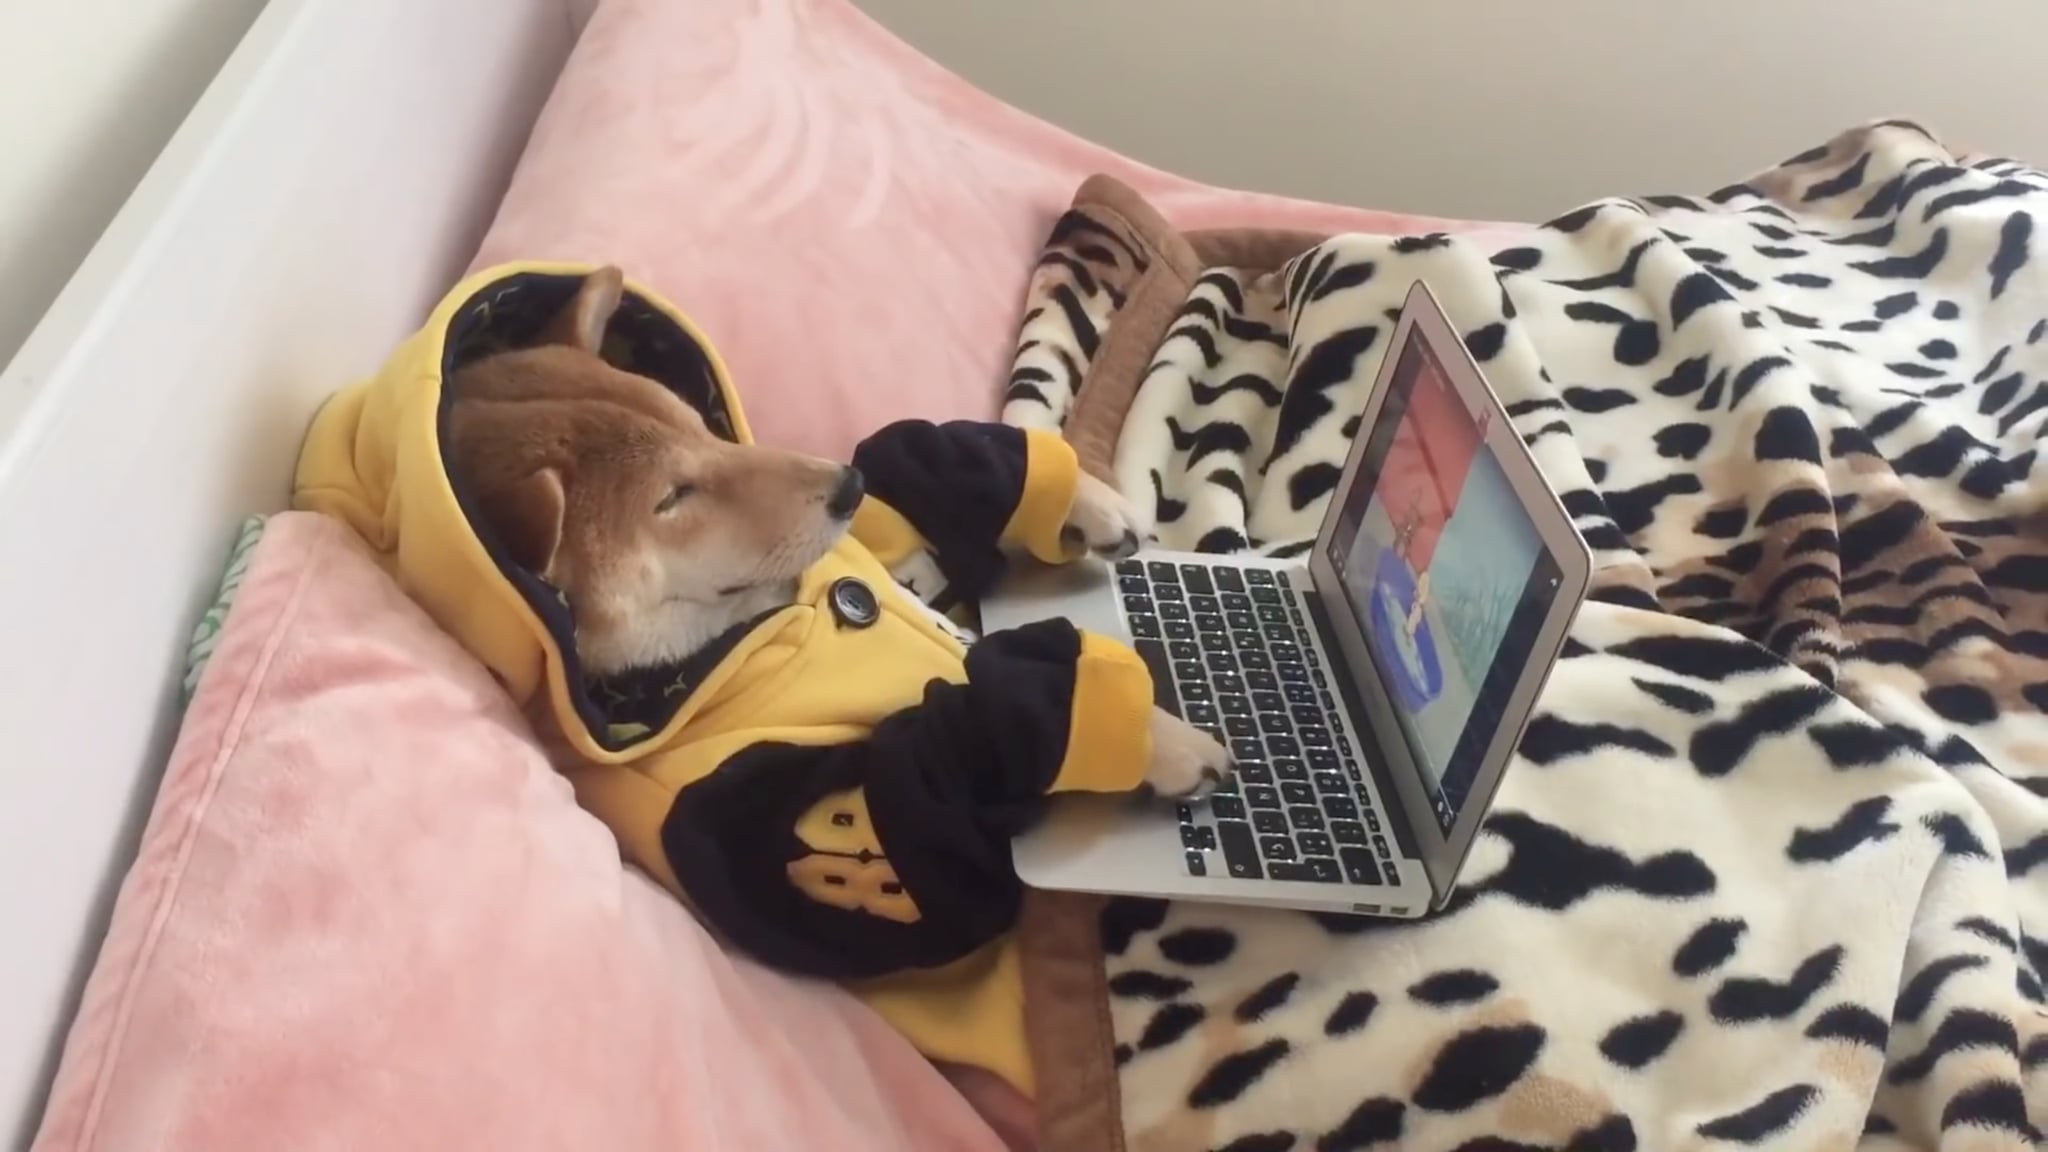 how to stop a dog who is addicted to screens